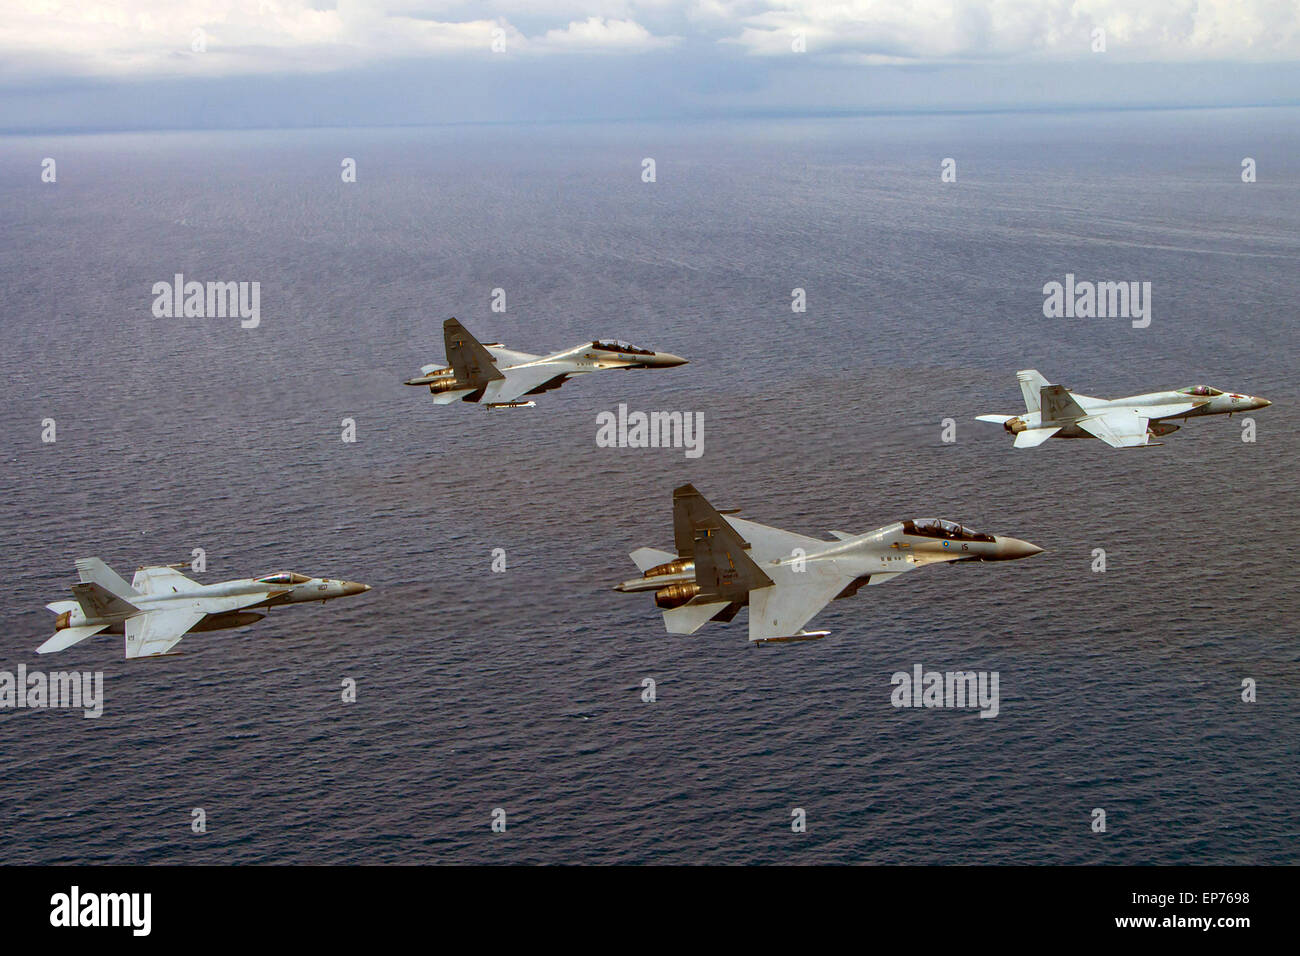 Two U.S. Navy F/A-18C Hornet fighter aircraft fly in formation with two Russian made Royal Malaysian Air Force SU - Stock Image